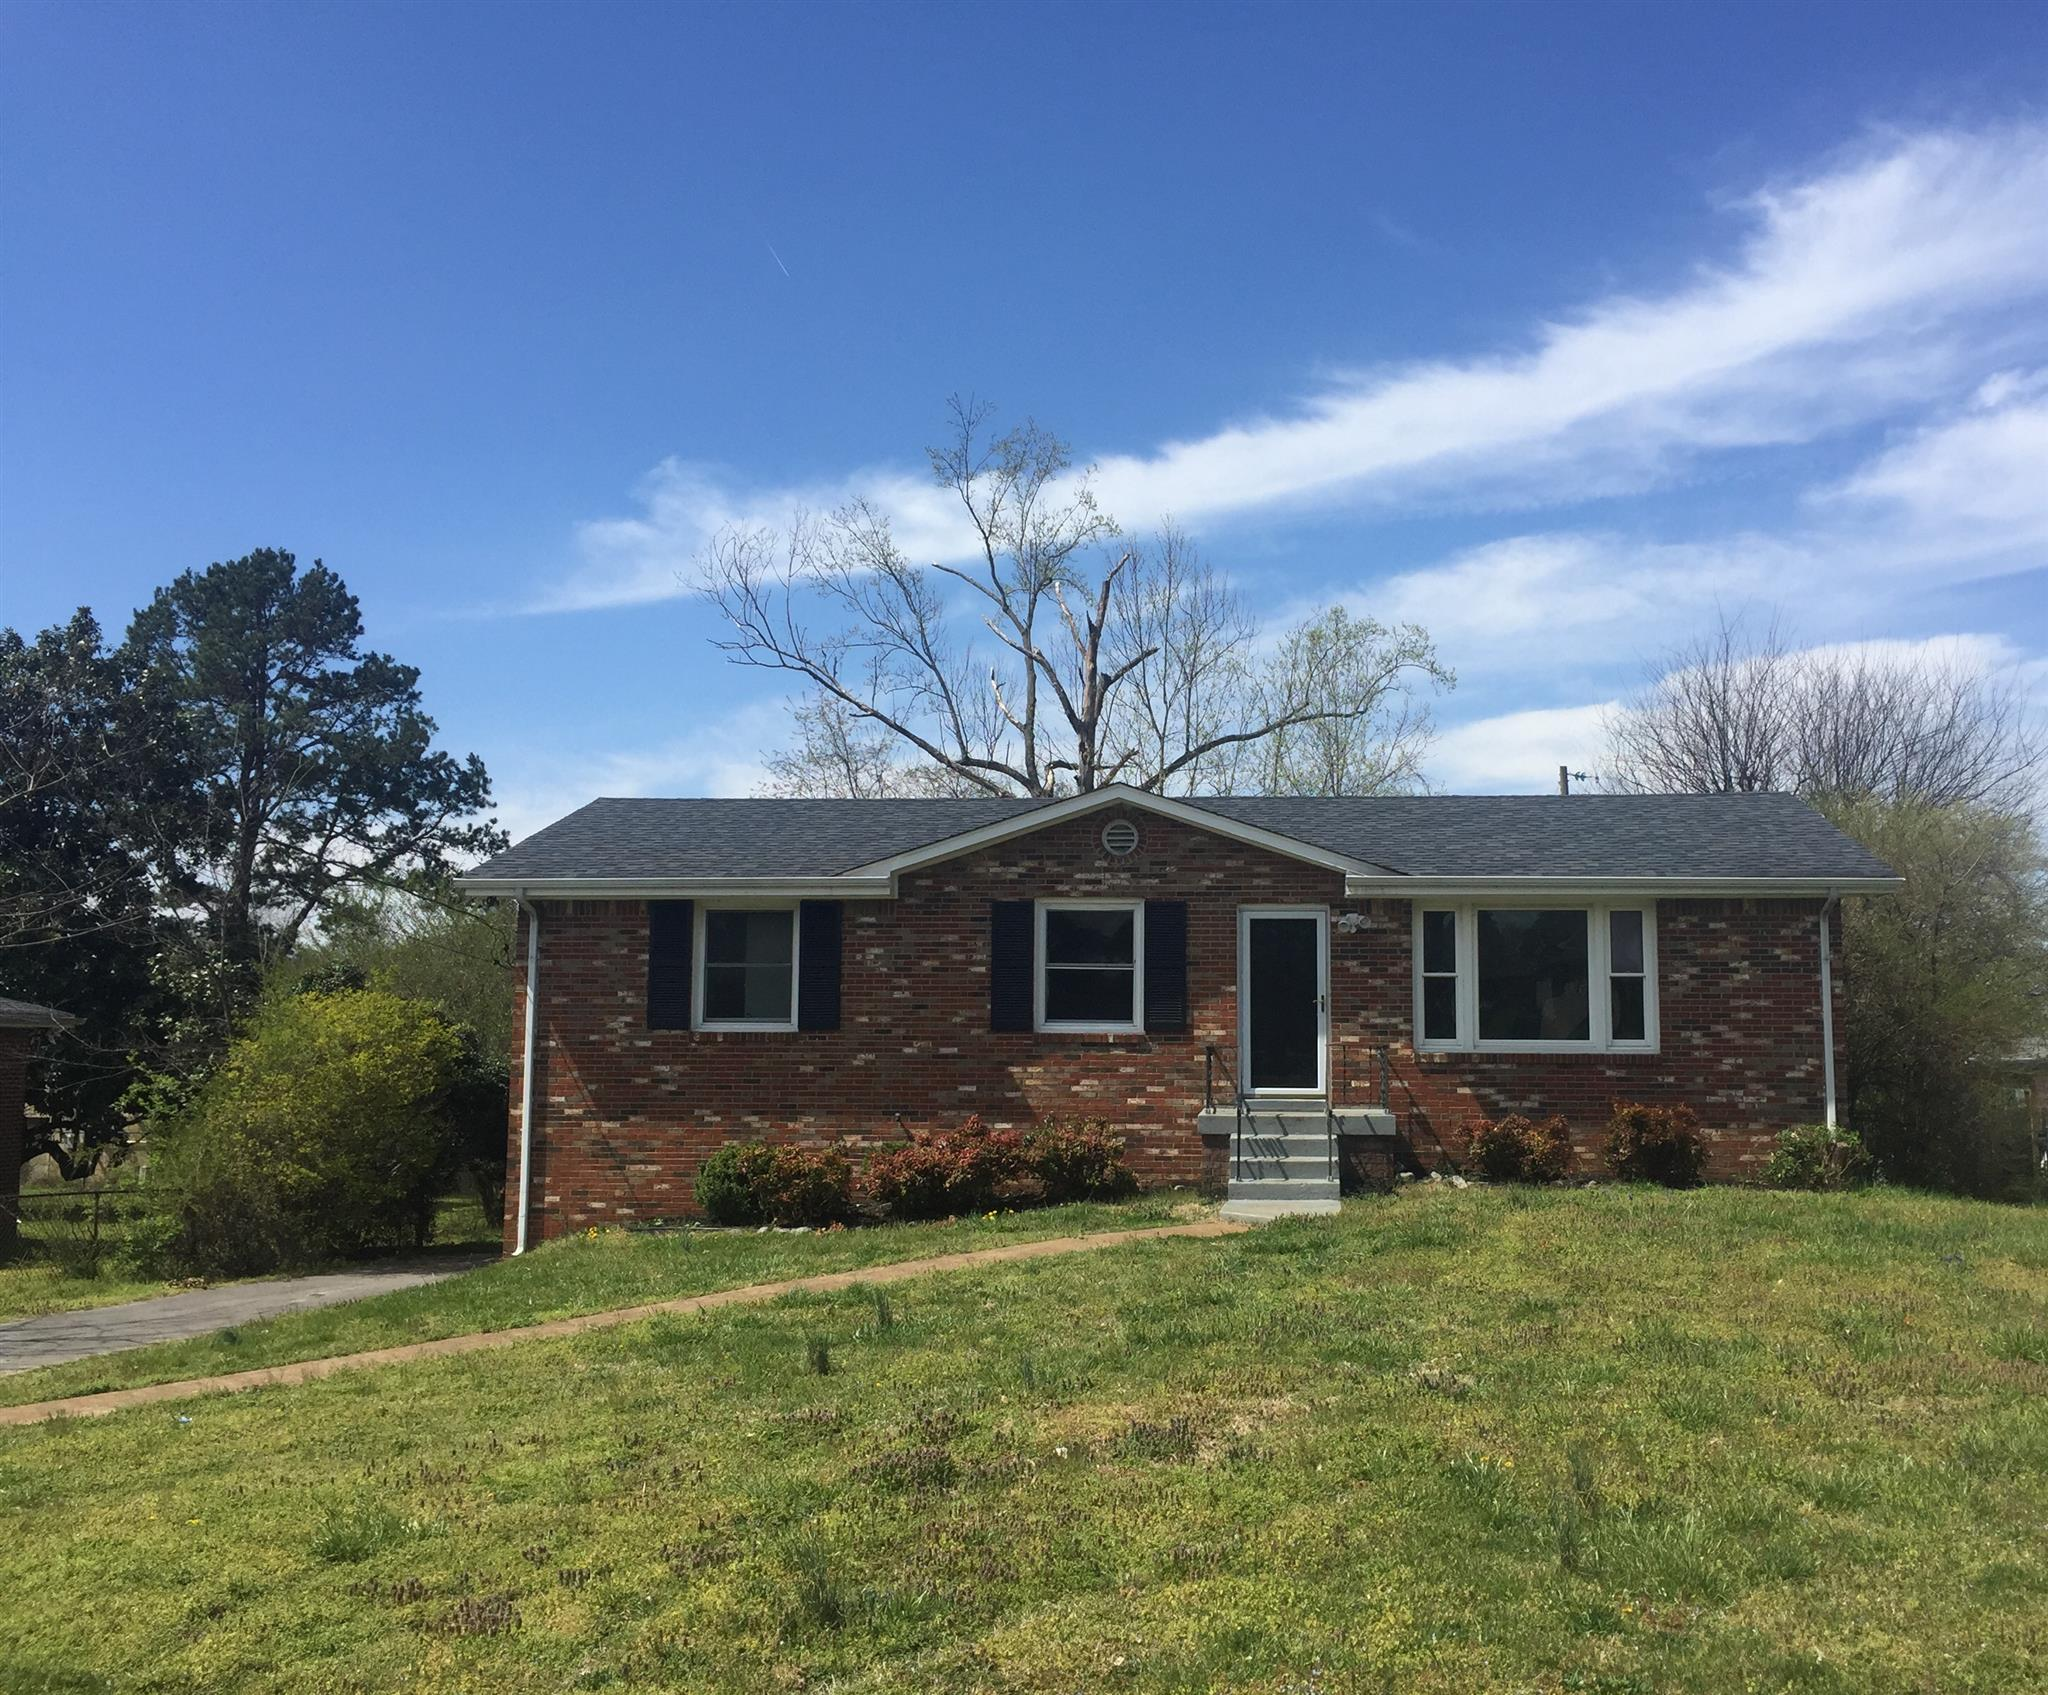 8311 LUREE LANE, Hermitage in Davidson County County, TN 37076 Home for Sale